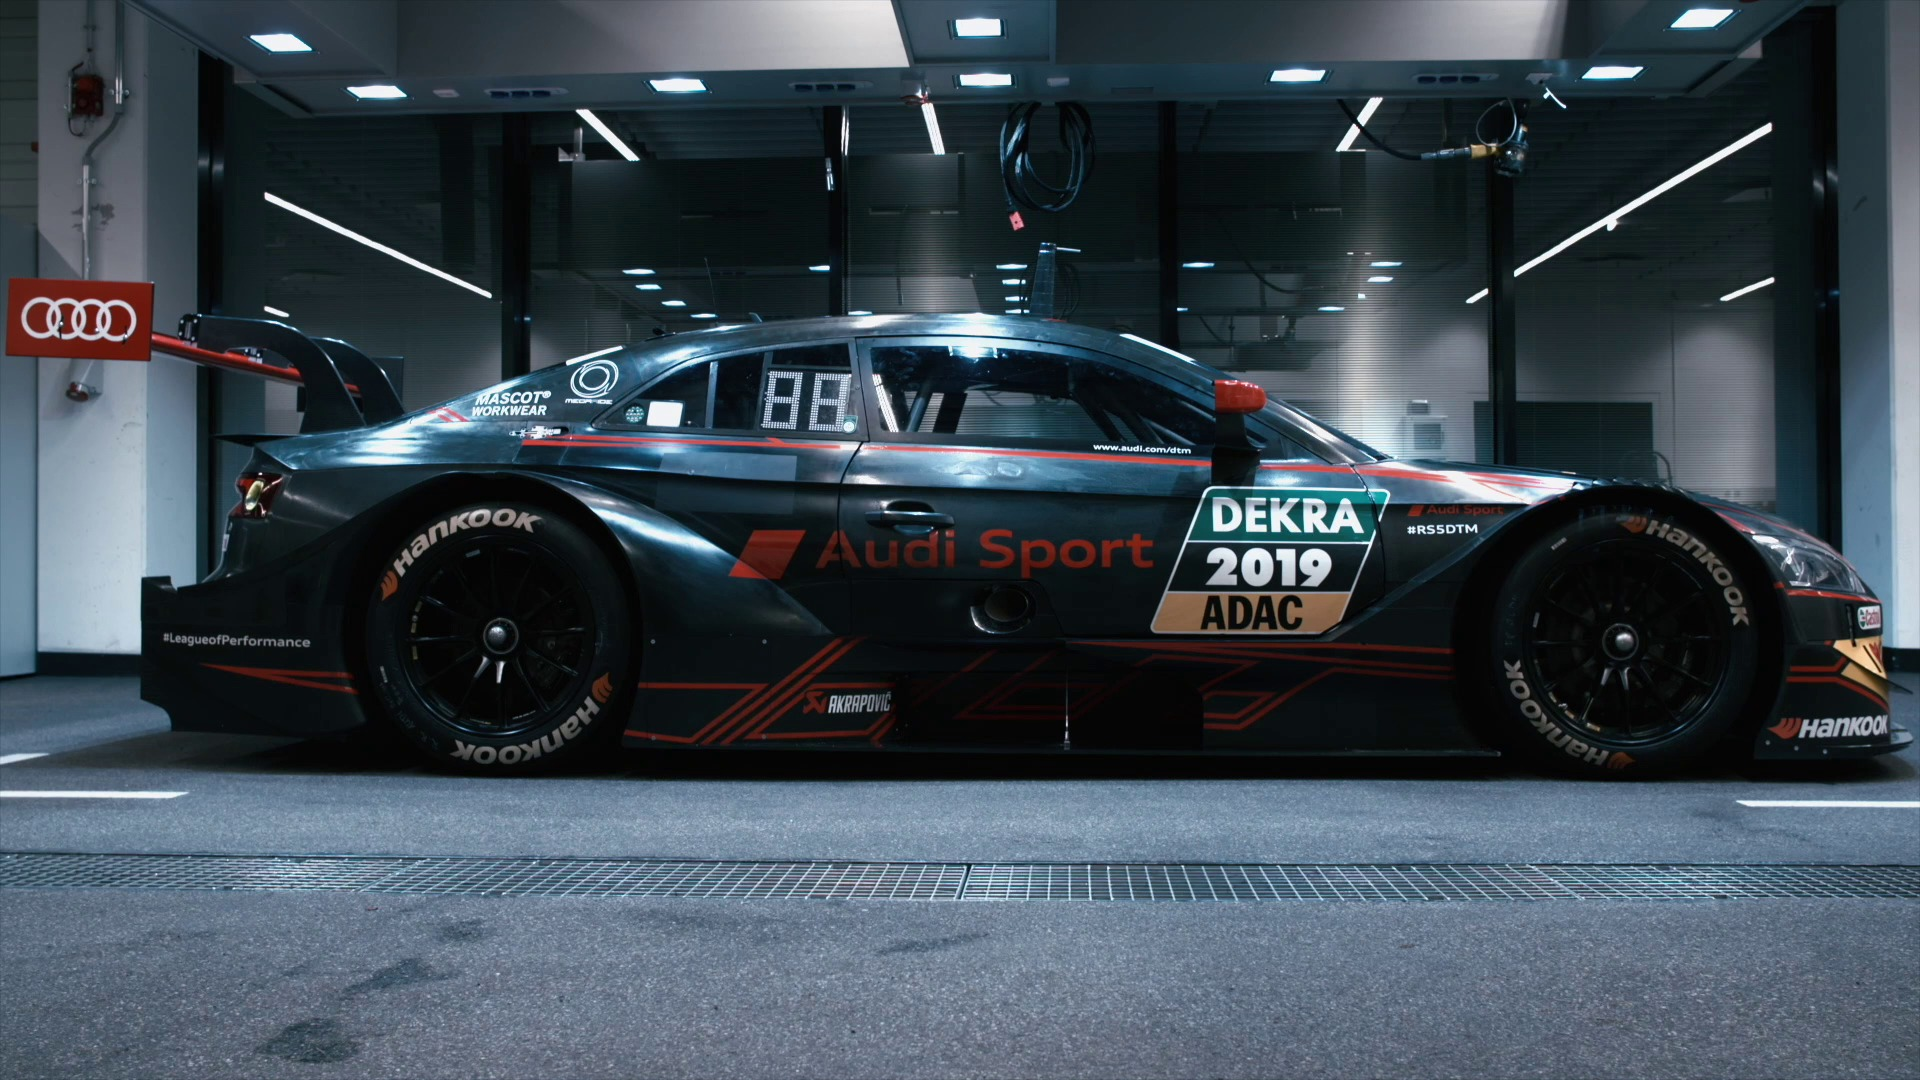 A new era in the DTM: The turbo is back